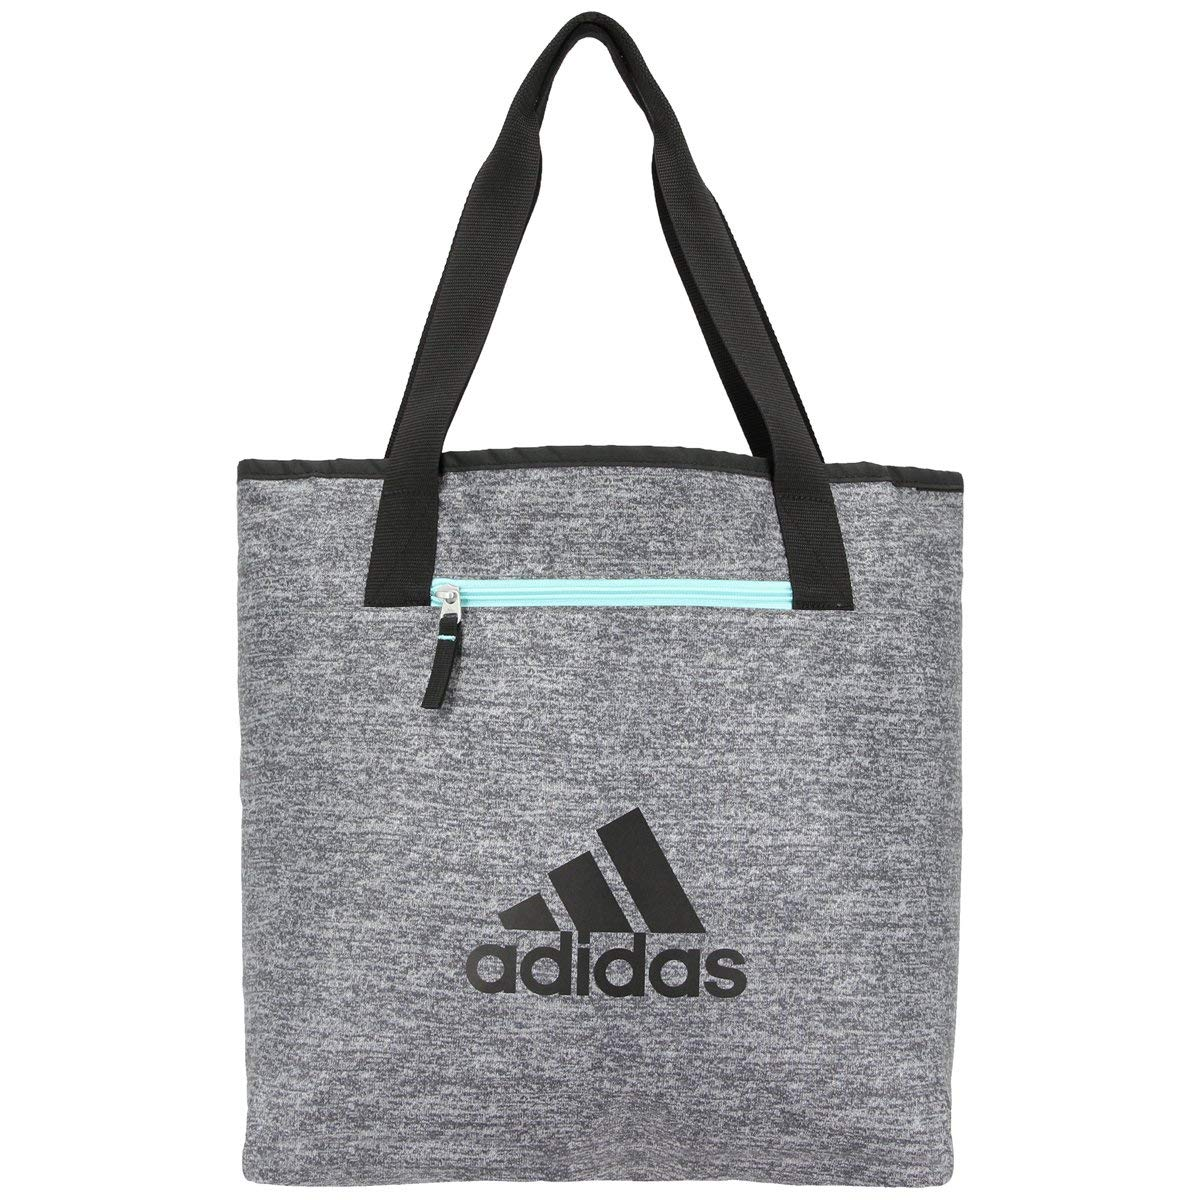 6 Must Have Small Tote Bags For Your Weekend Getaway - trekbible